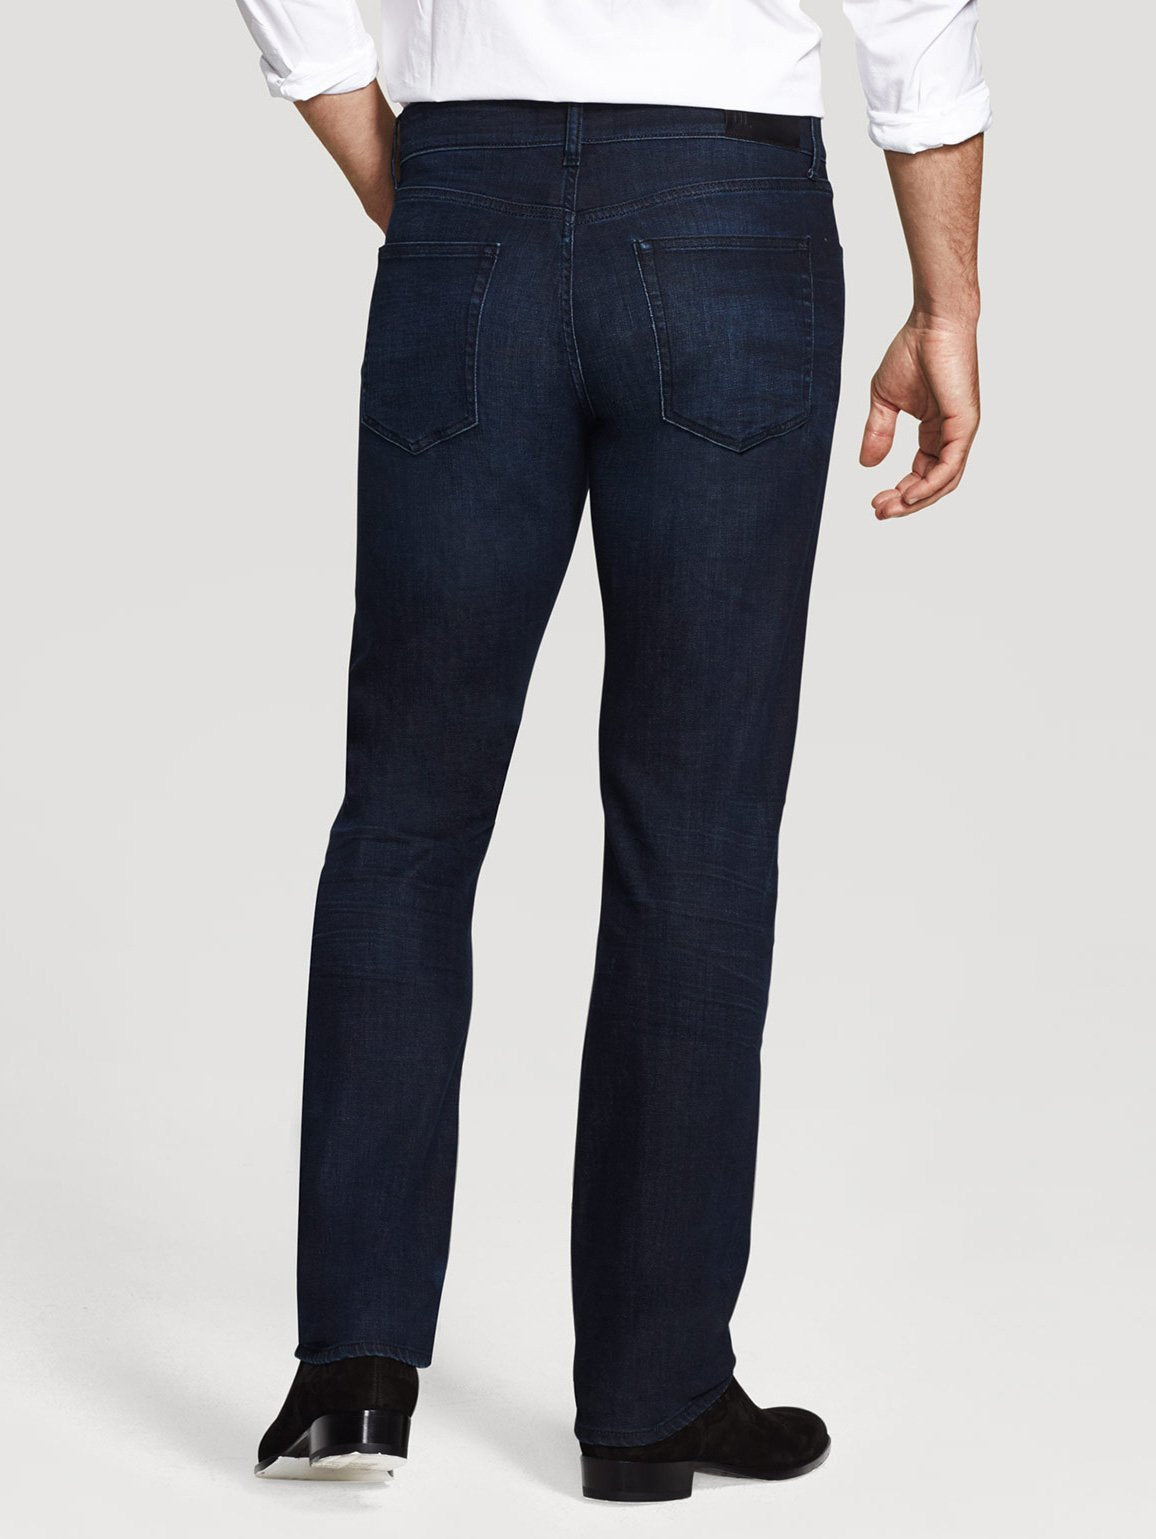 DL1961 Mens Russell Slim Straight Jean in Ink